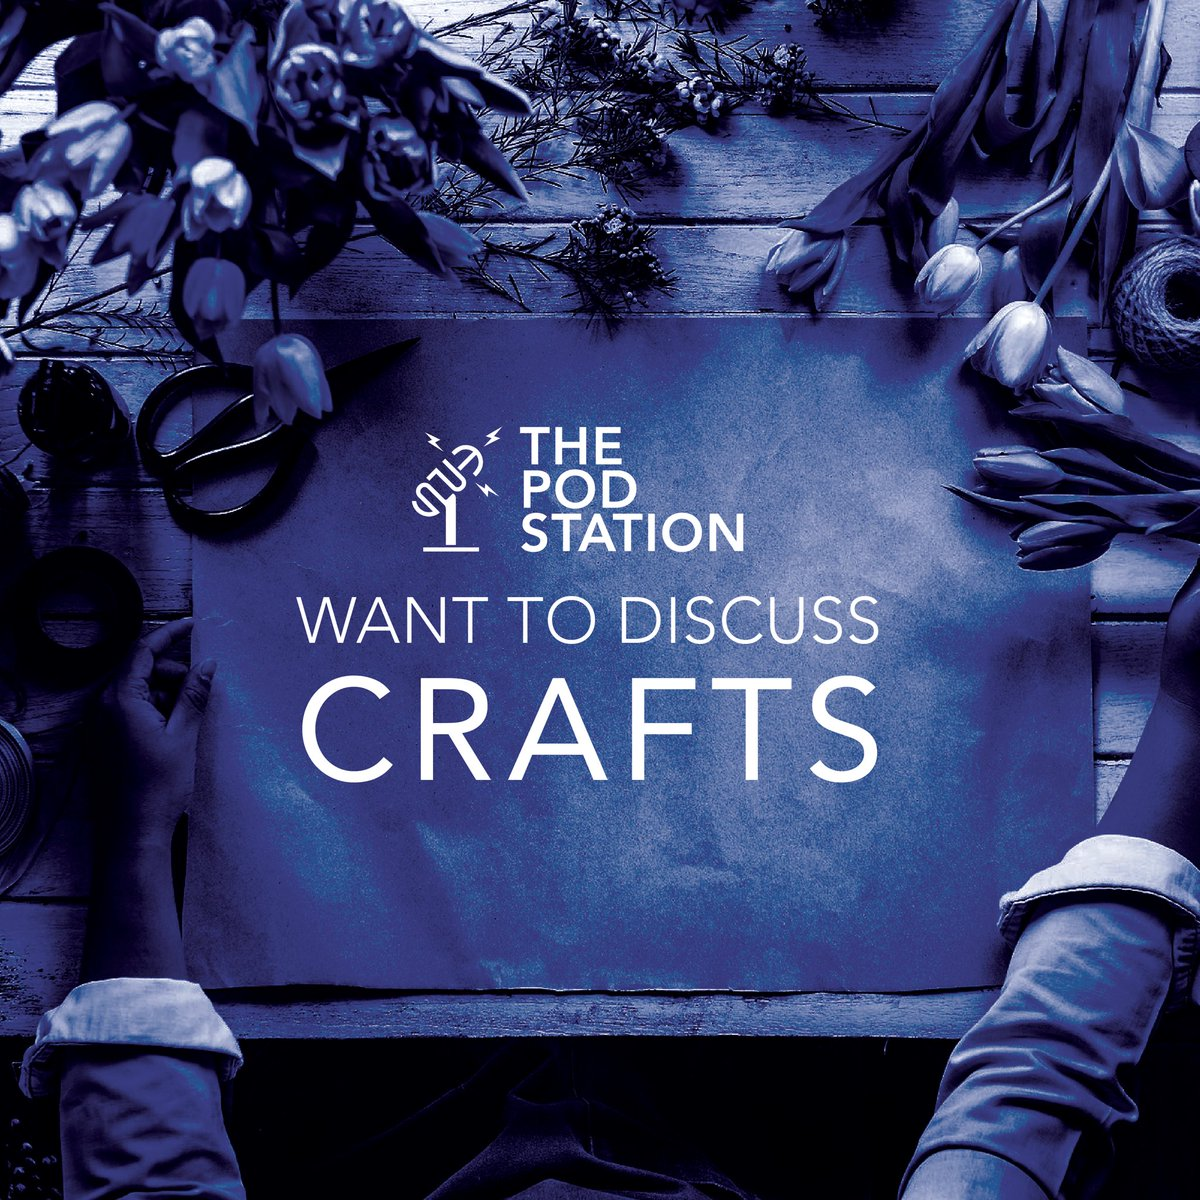 Fancied doing a podcast but the whole 'How to do it' put you off?  Check out our problem solving packages: http://thepodstation.co.uk/station-packages/becoming-a-podcaster…  #thepodstation #podcasts #podcasting #podcastshow #PodcastSeries #arts #crafts #artsandcrafts #crafting #craftpodcast #learn #fun #educationpic.twitter.com/fvgylkOZBh